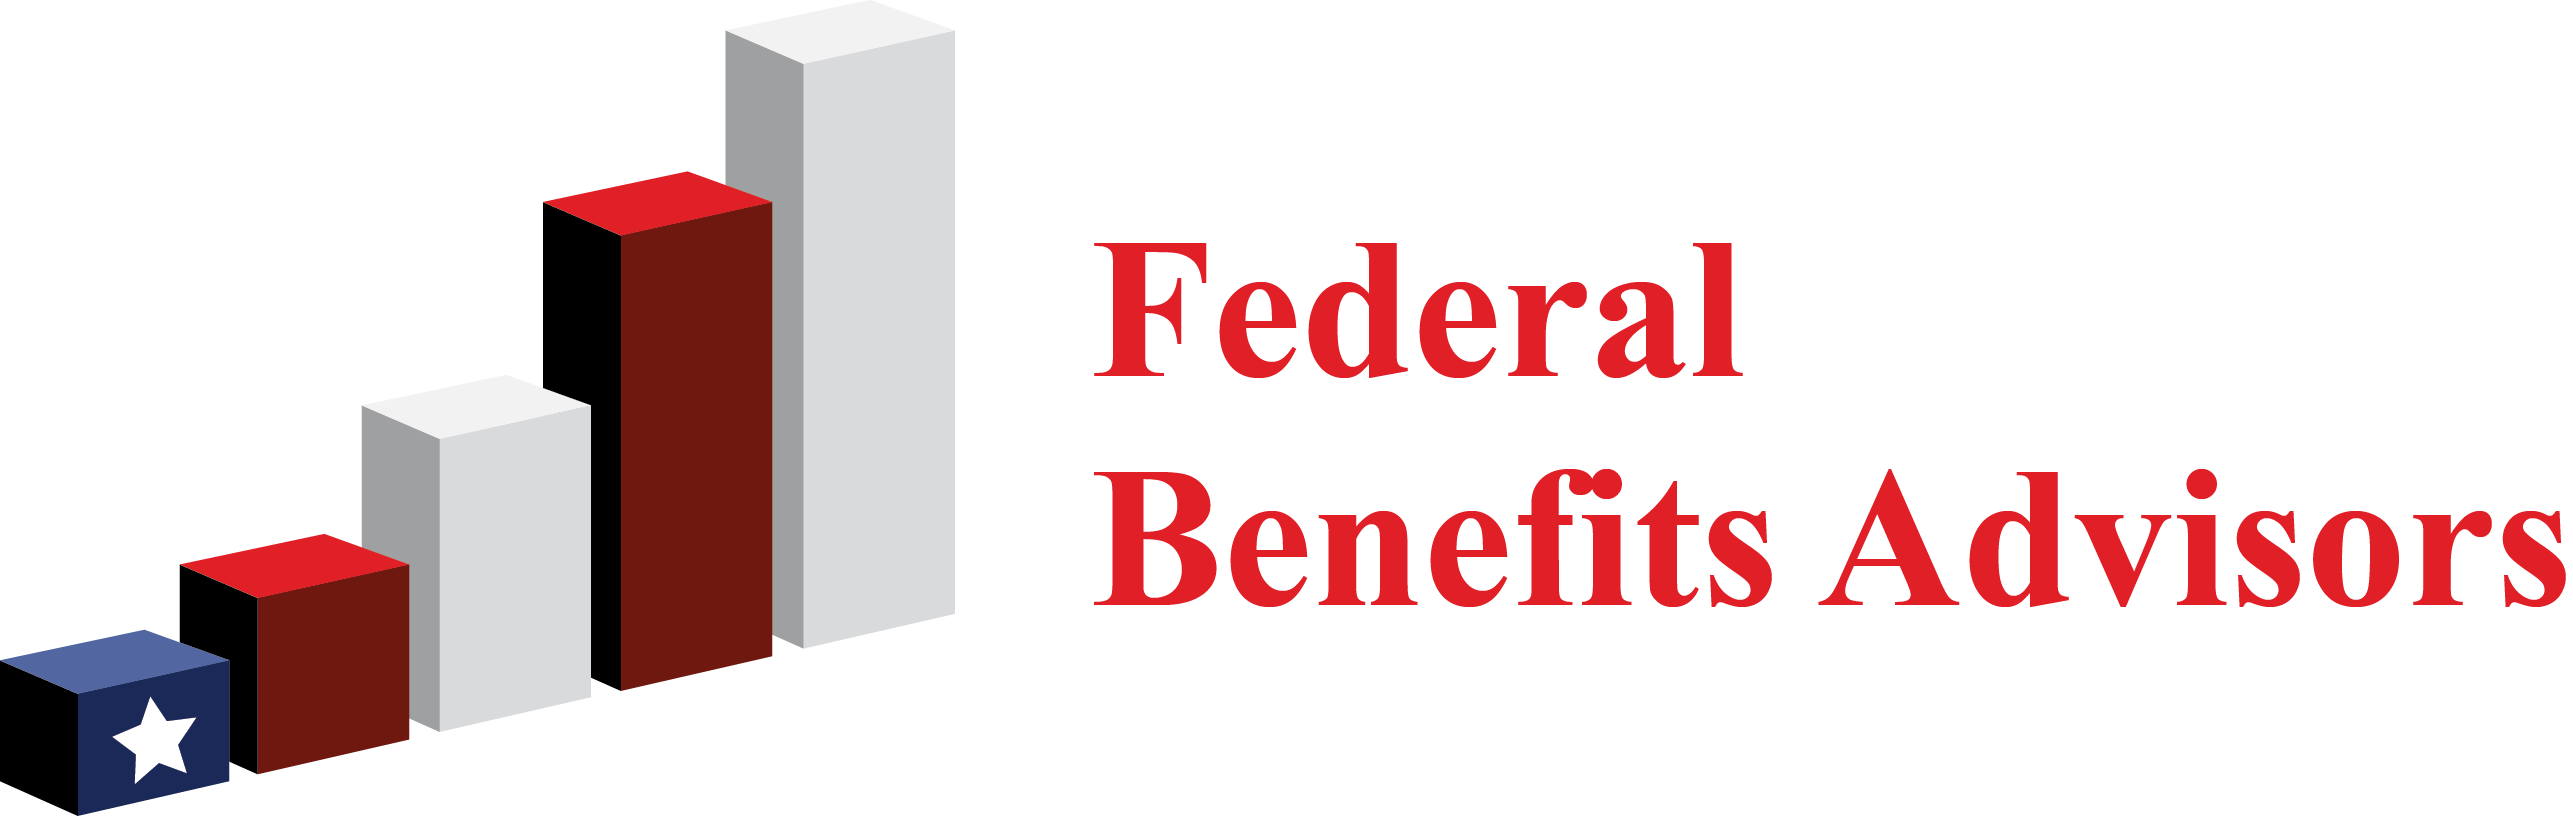 Federal Benefits Advisors